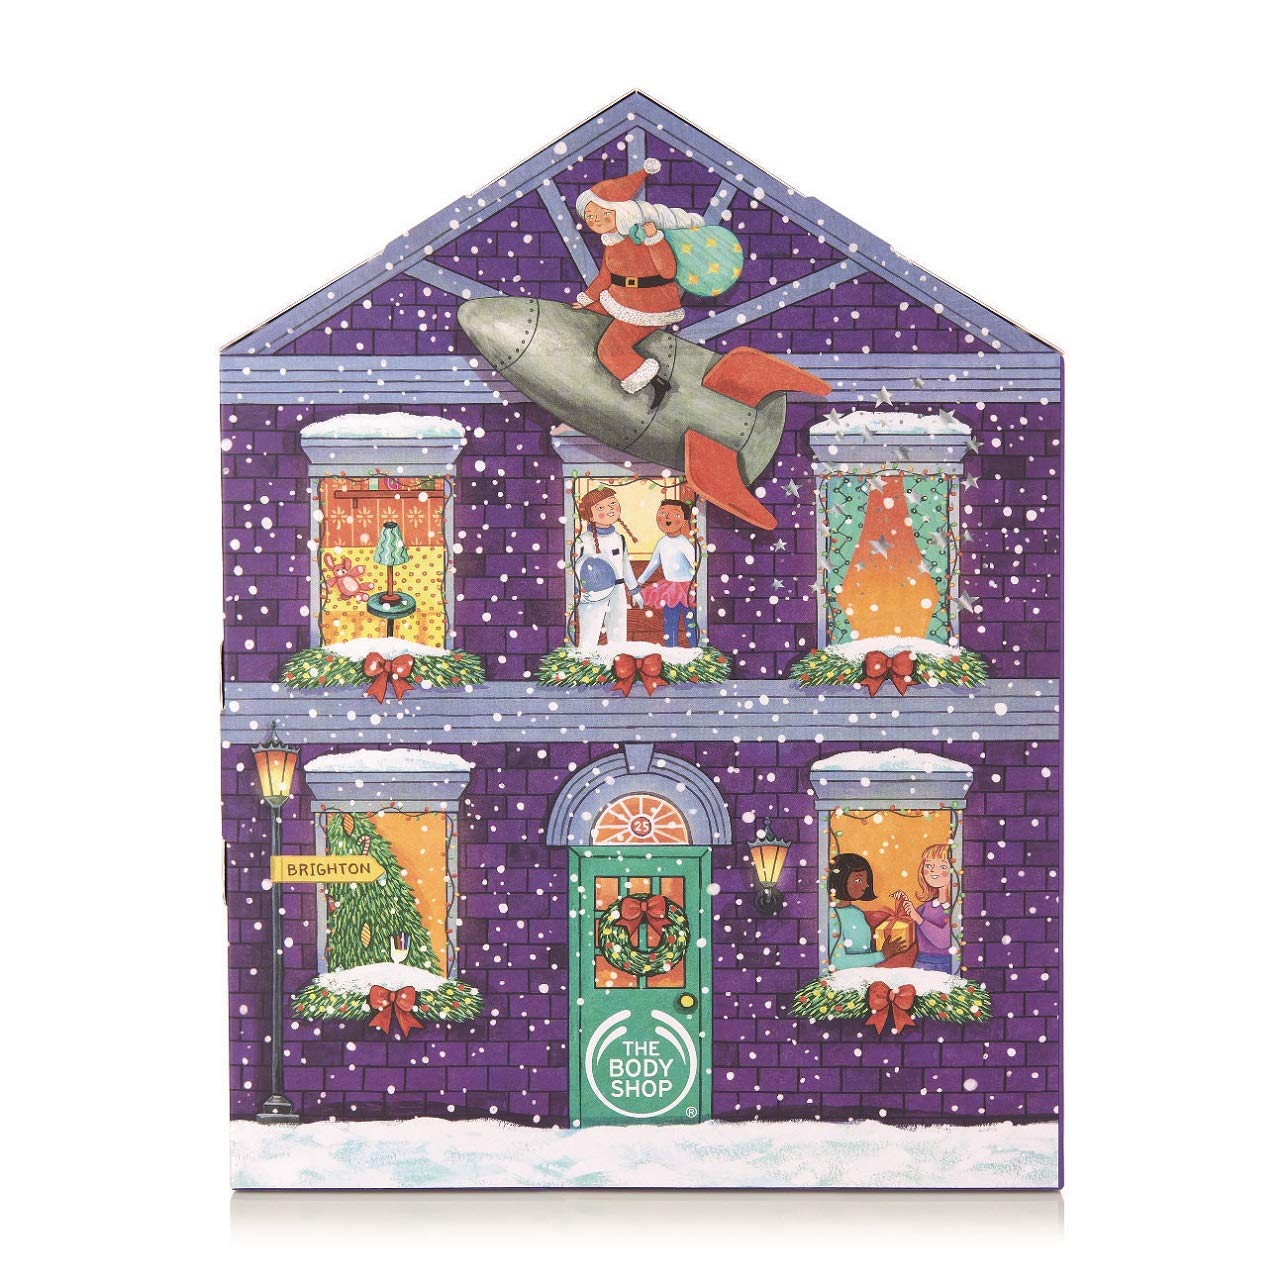 The Body Shop Entry Advent Calendar, 24Piece Gift Set Of 100% Vegetarian Skincare, Body Care, And Makeup Treats, 33.33 Fl. Oz. by The Body Shop